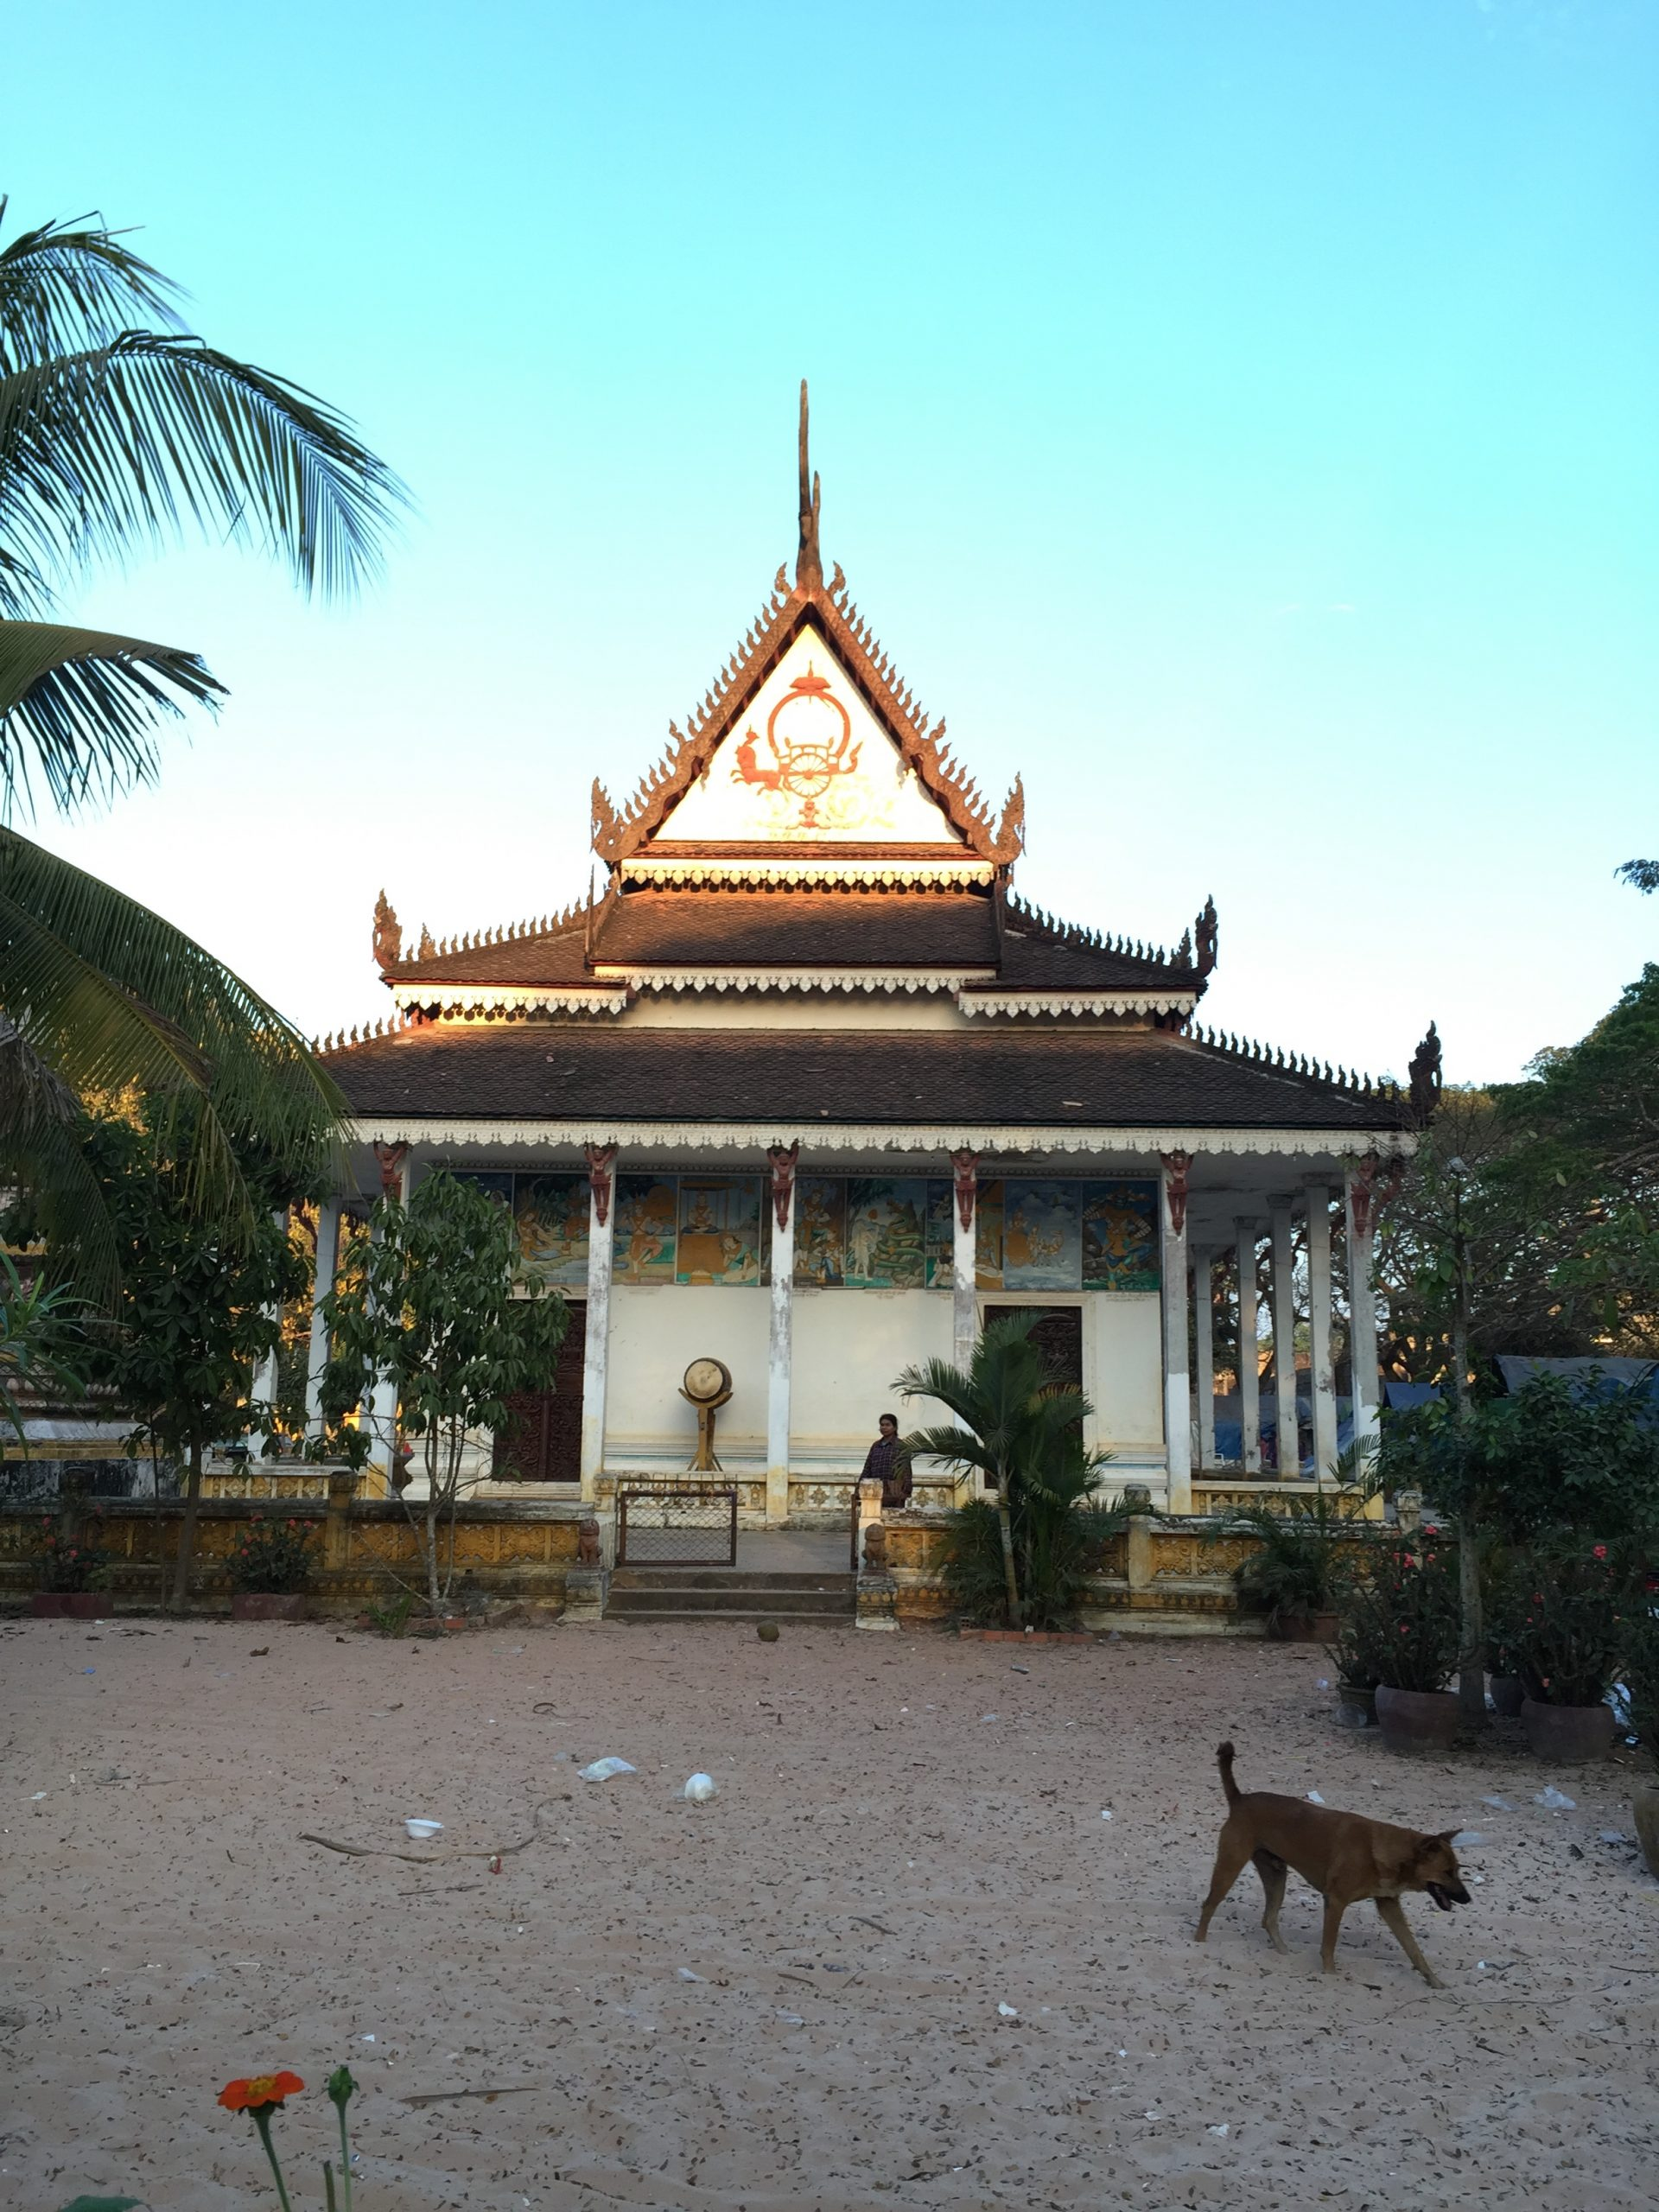 A very old Pagoda in the area of Angkor Wat, Siem Reap